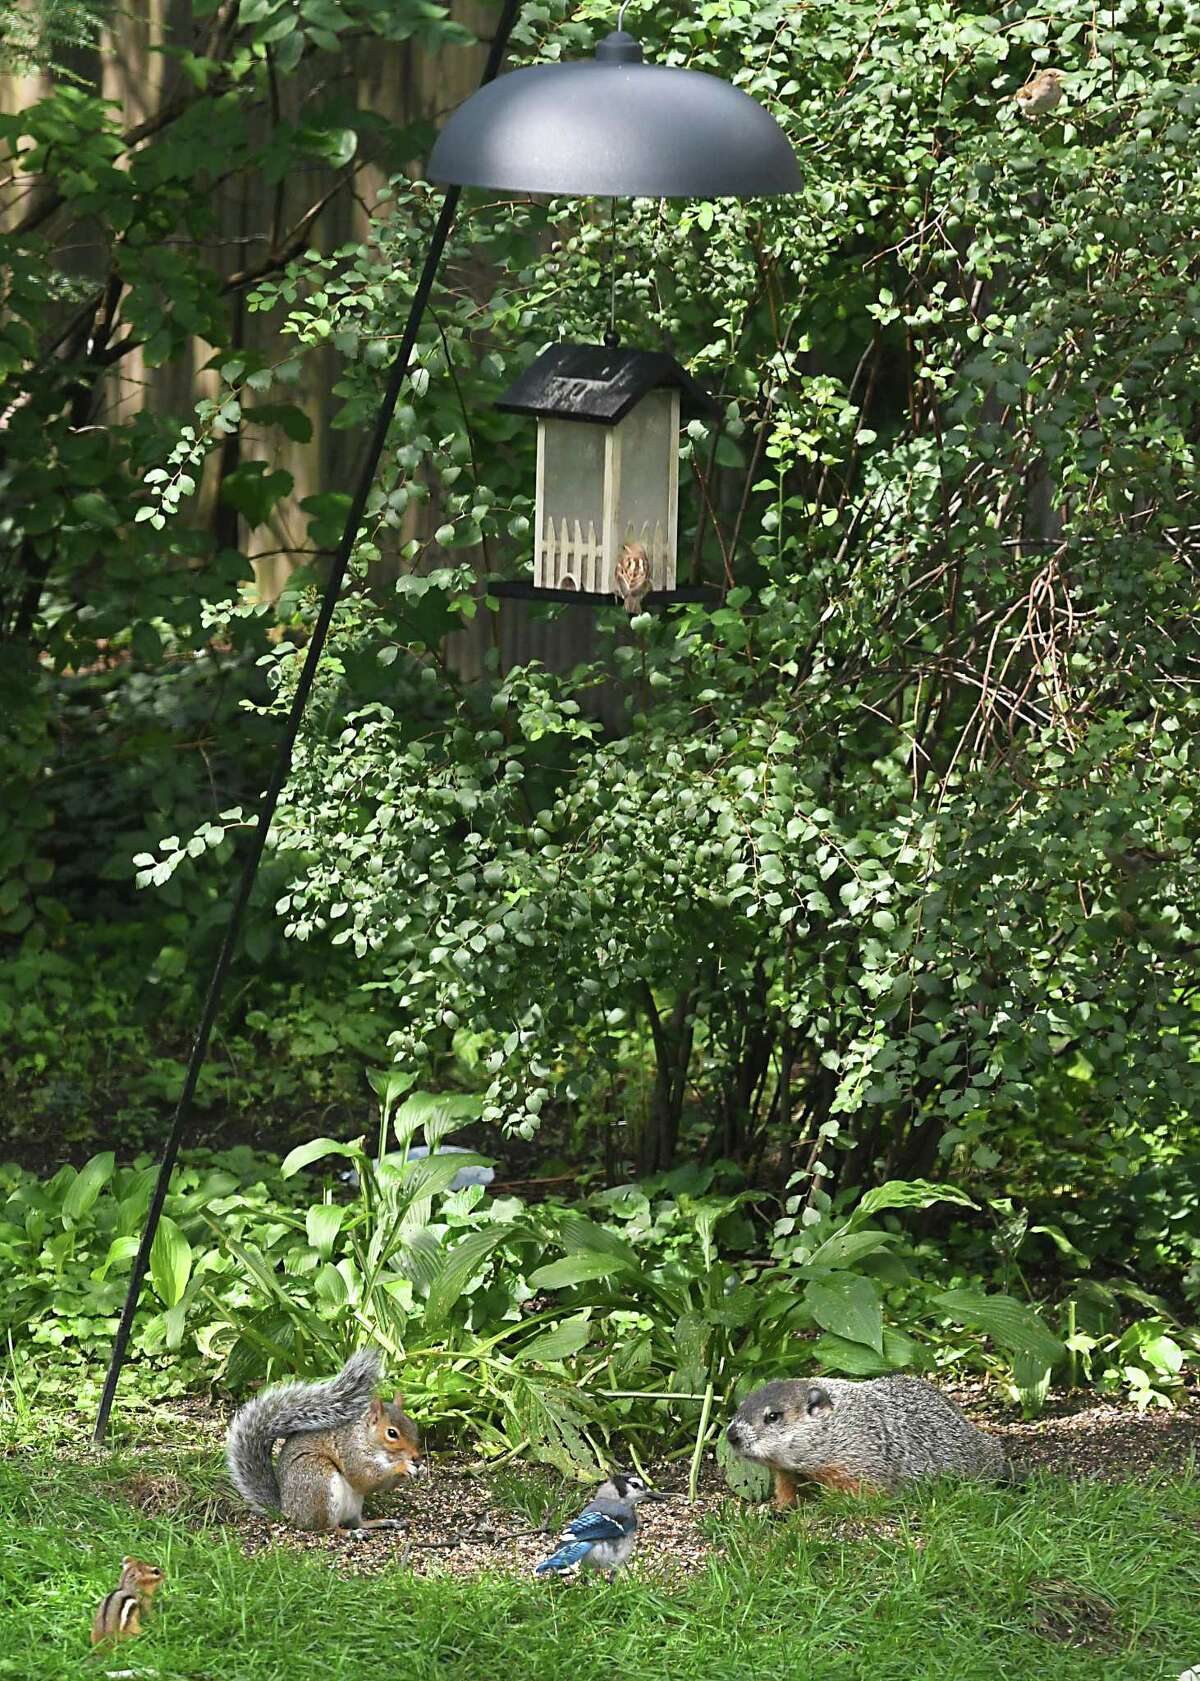 Bird feeders attract more than birds as seen with this feeder that is feeding a chipmunk, squirrel, ground hog and can attract bears on Friday, Aug. 17, 2018 in Guilderland, N.Y. DEC has announced it will start writing $250 tickets to people who have already been warned to take in feeders during summer months. (Lori Van Buren/Times Union)